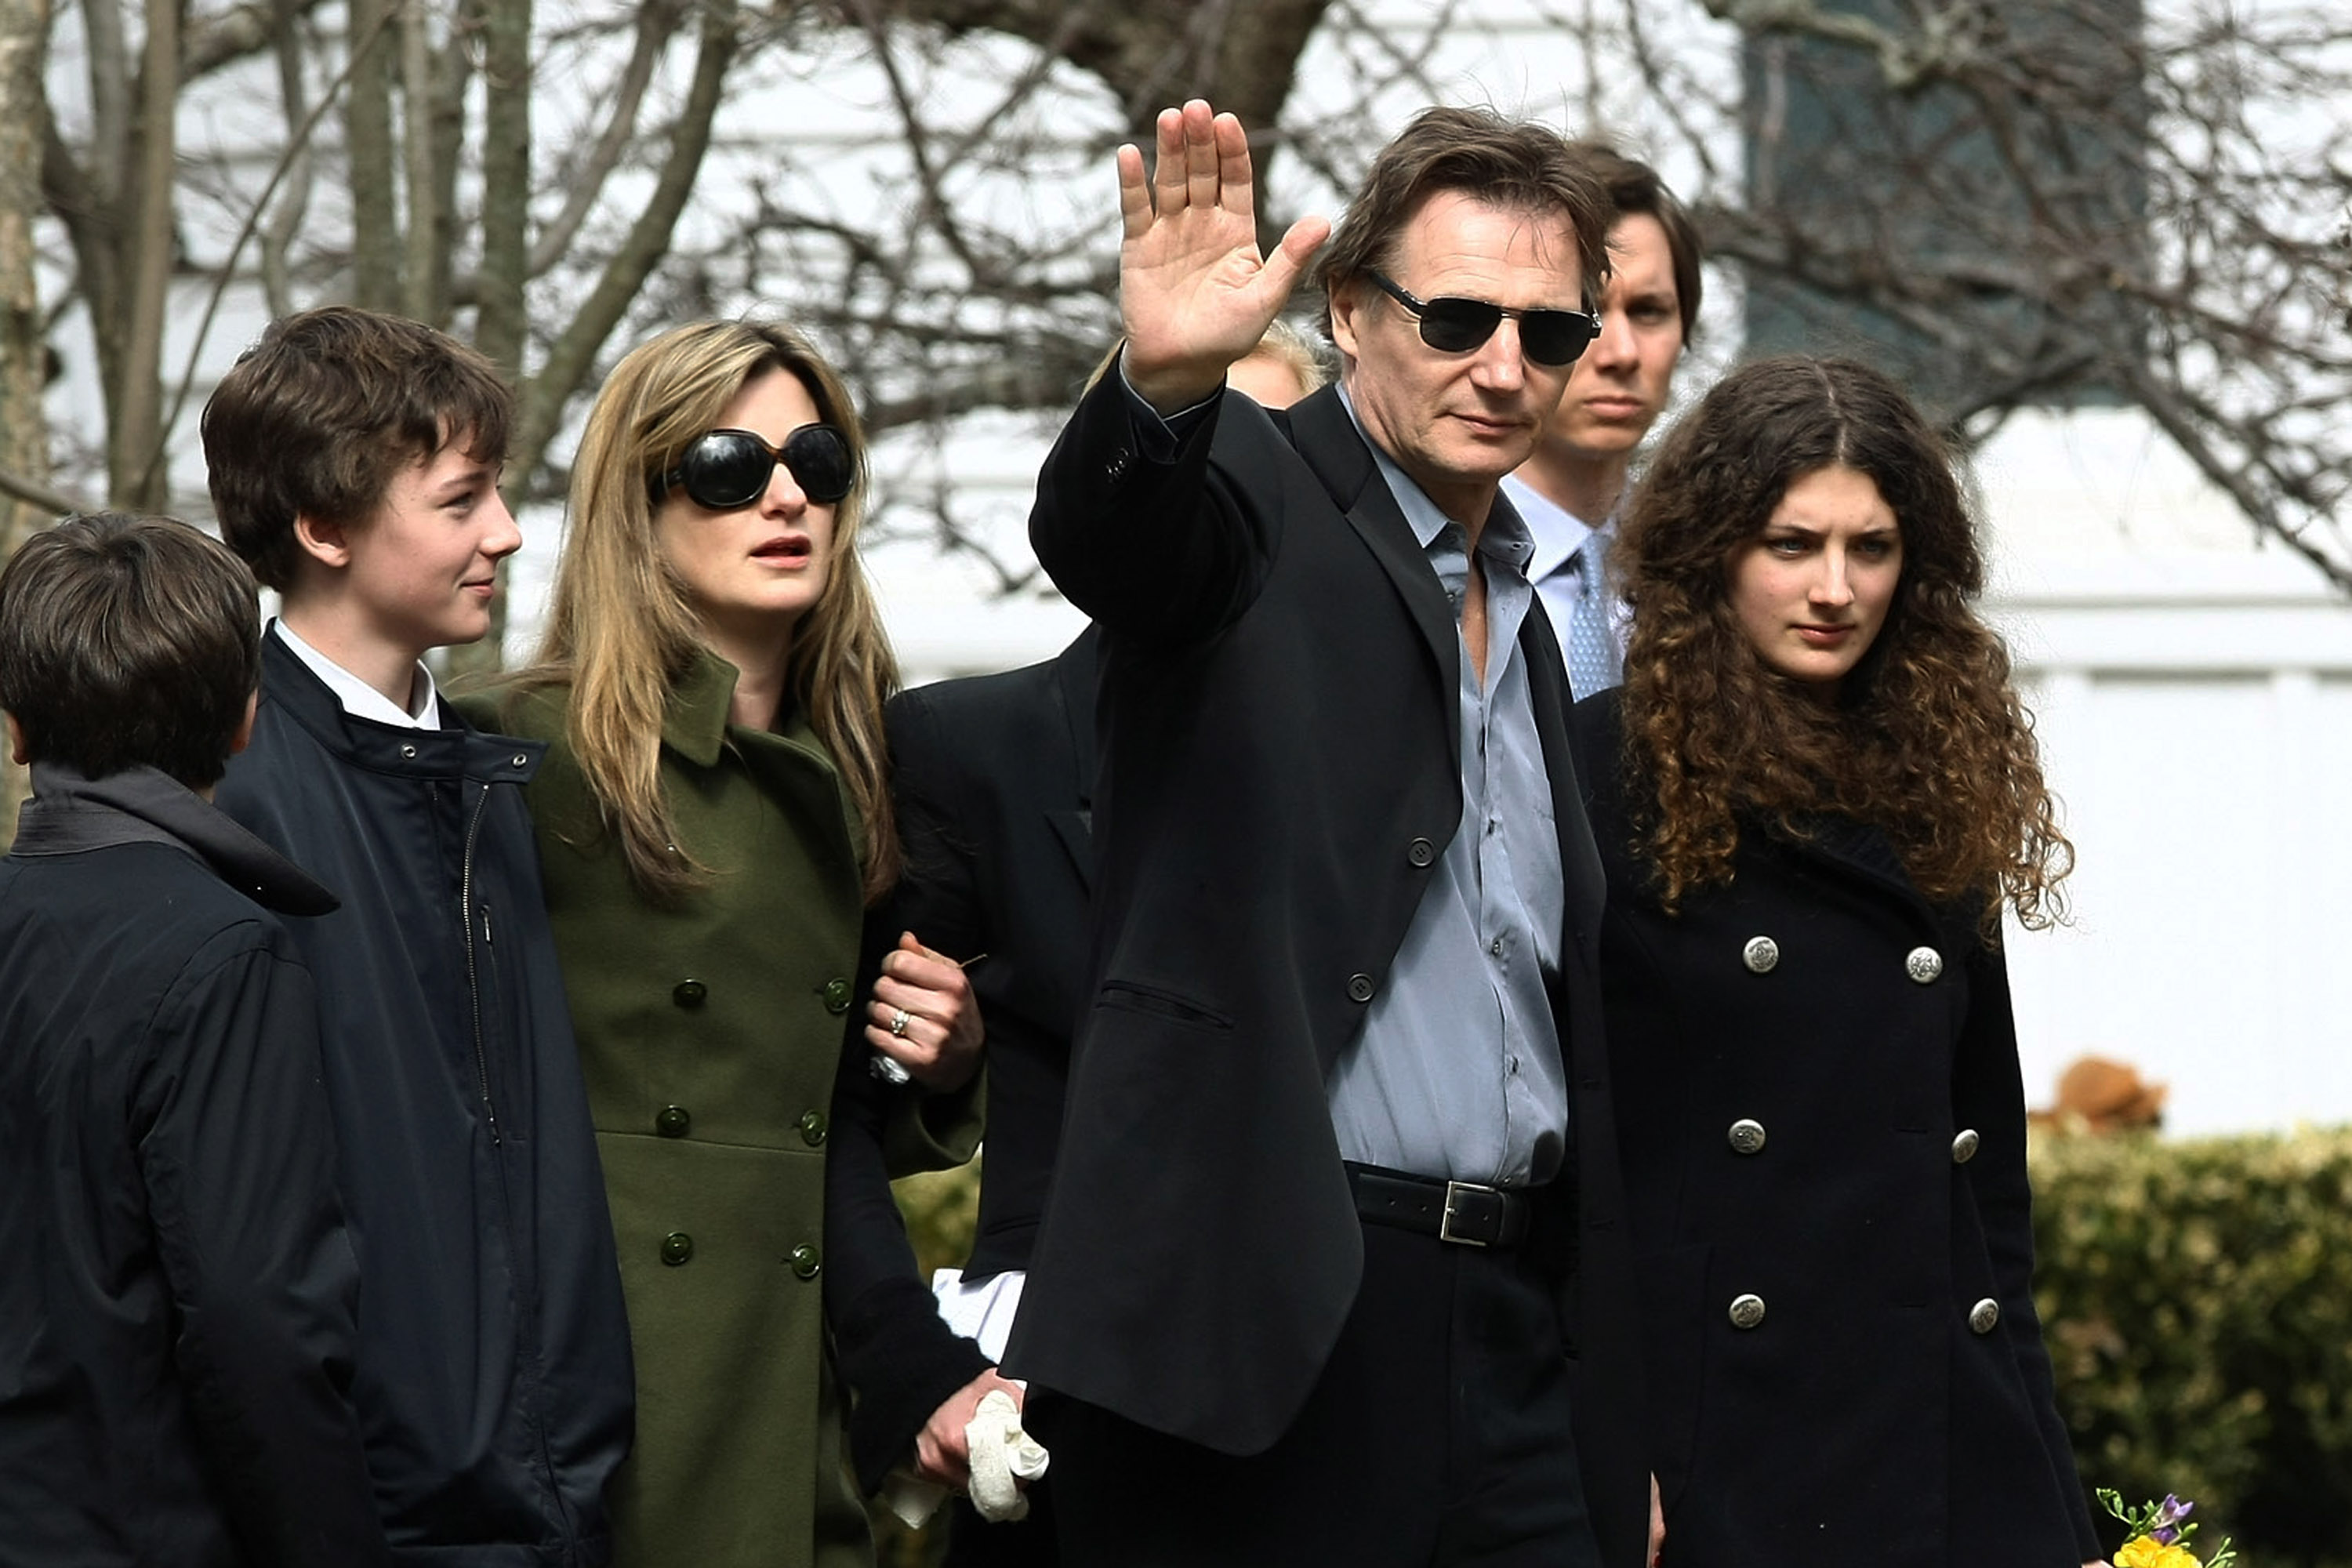 Actor Liam Neeson (2R) with family (L-R) son Daniel Neeson, son Micheal Neeson, an unidentified person, and niece Daisy Bevan arrive for the funeral of actress Natasha Richardson at St. Peter's Lithgow Episcopal Church on March 22, 2009 in Lithgow, New York. Richardson died at Lenox Hill Hospital on March 18 in New York City after suffering a ski injury at the Mont Tremblant resort in Montreal.